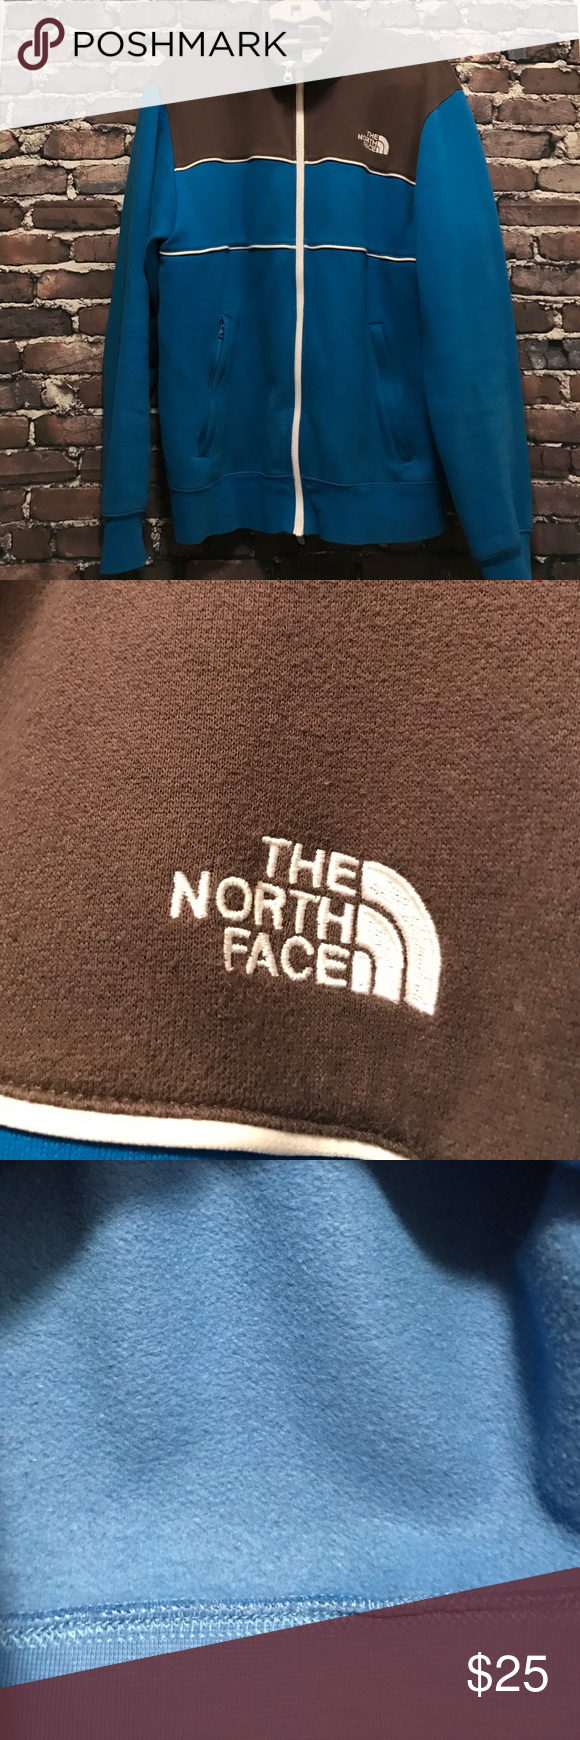 North face jacket sweatshirt zip up Gently used north face grey and blue sweatshirt. No stains . Like new condition The North Face Sweaters Zip Up